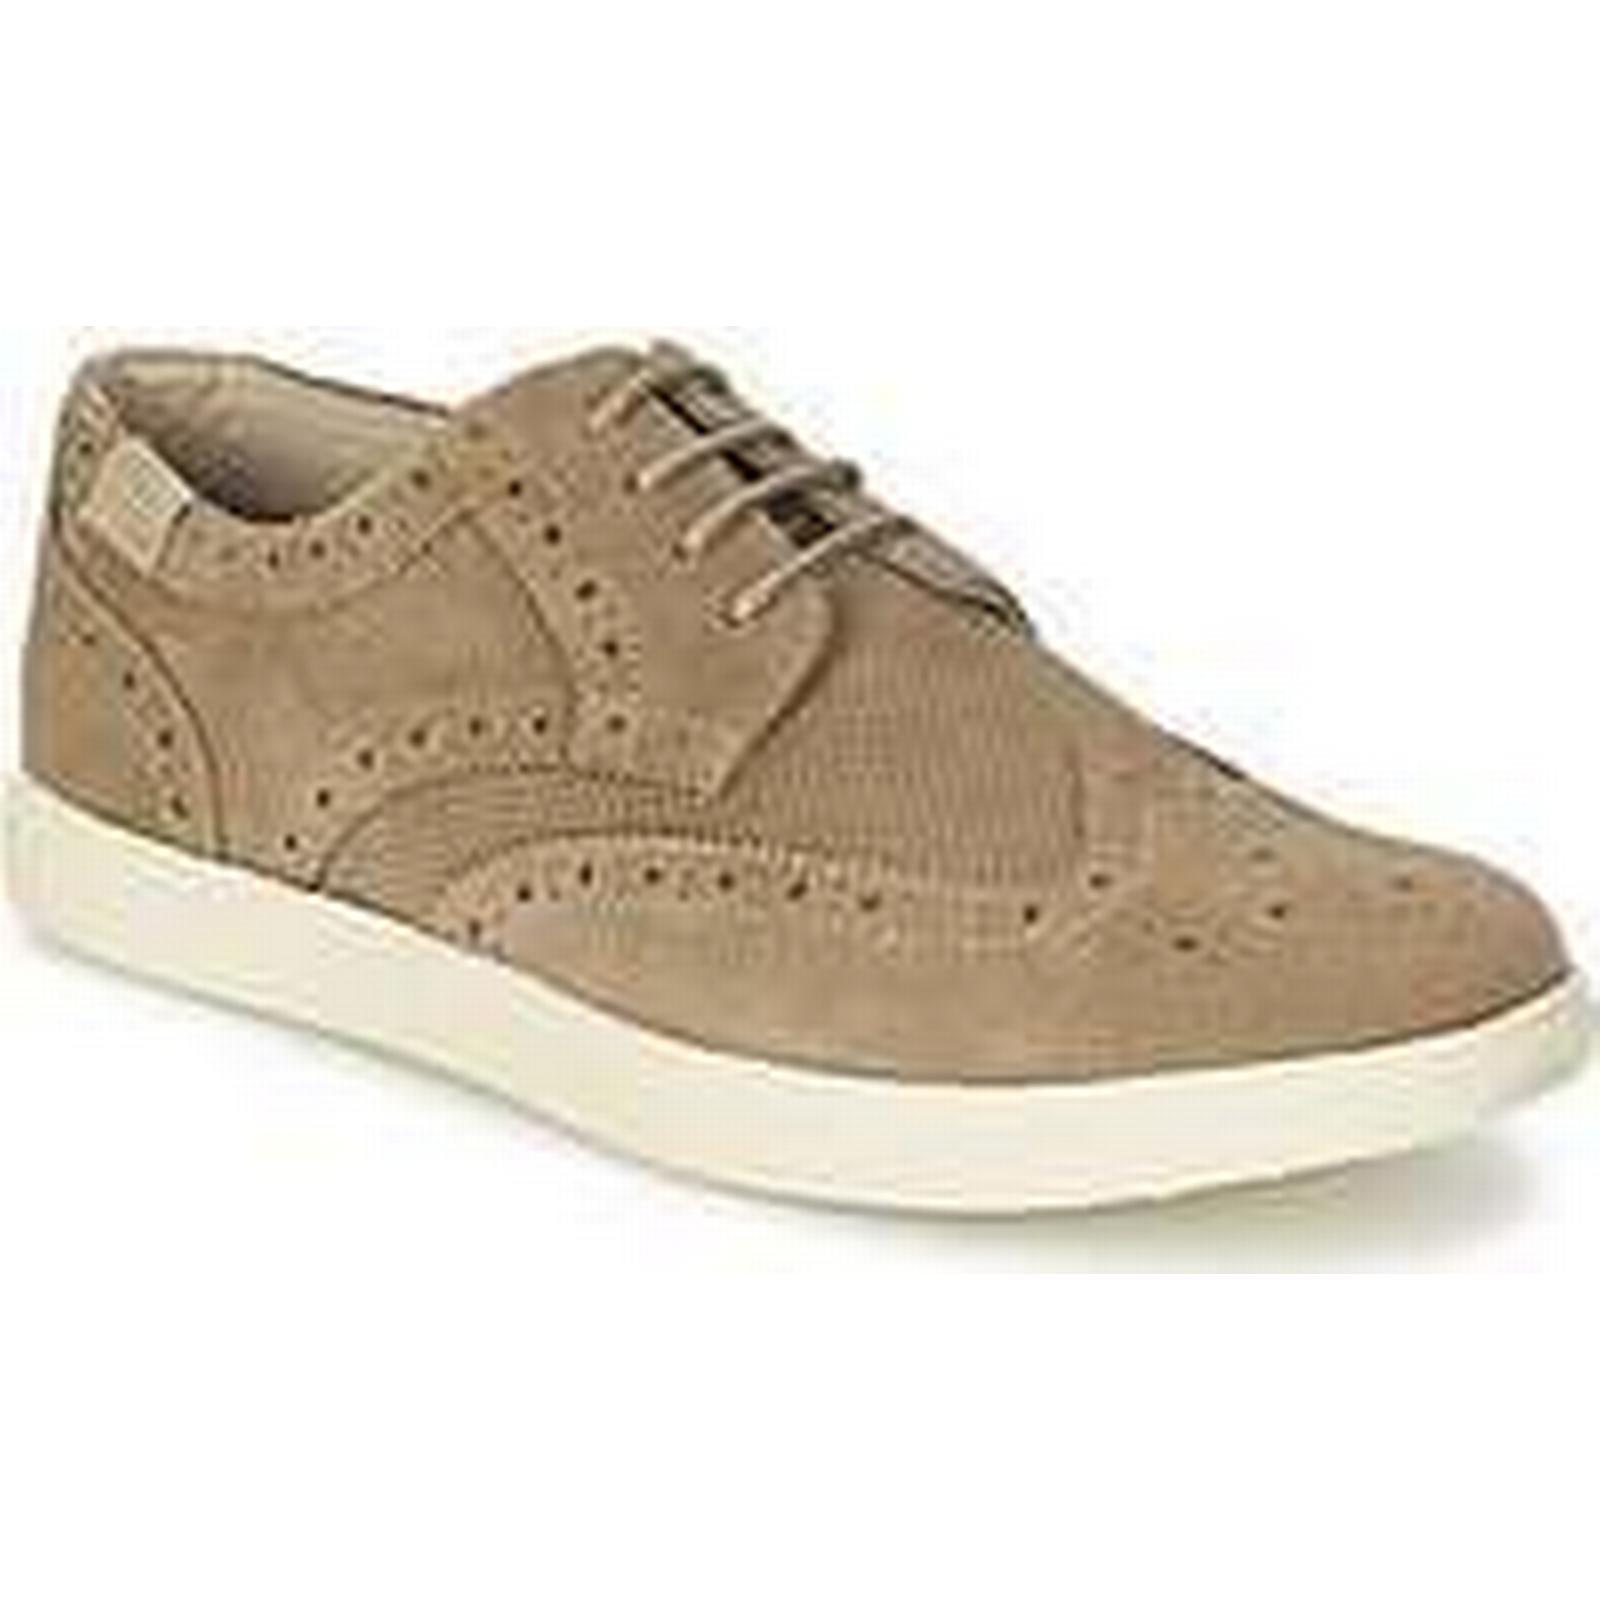 Spartoo.co.uk Casual BKR LAST FRIDO men's Casual Spartoo.co.uk Shoes in Brown 41b837